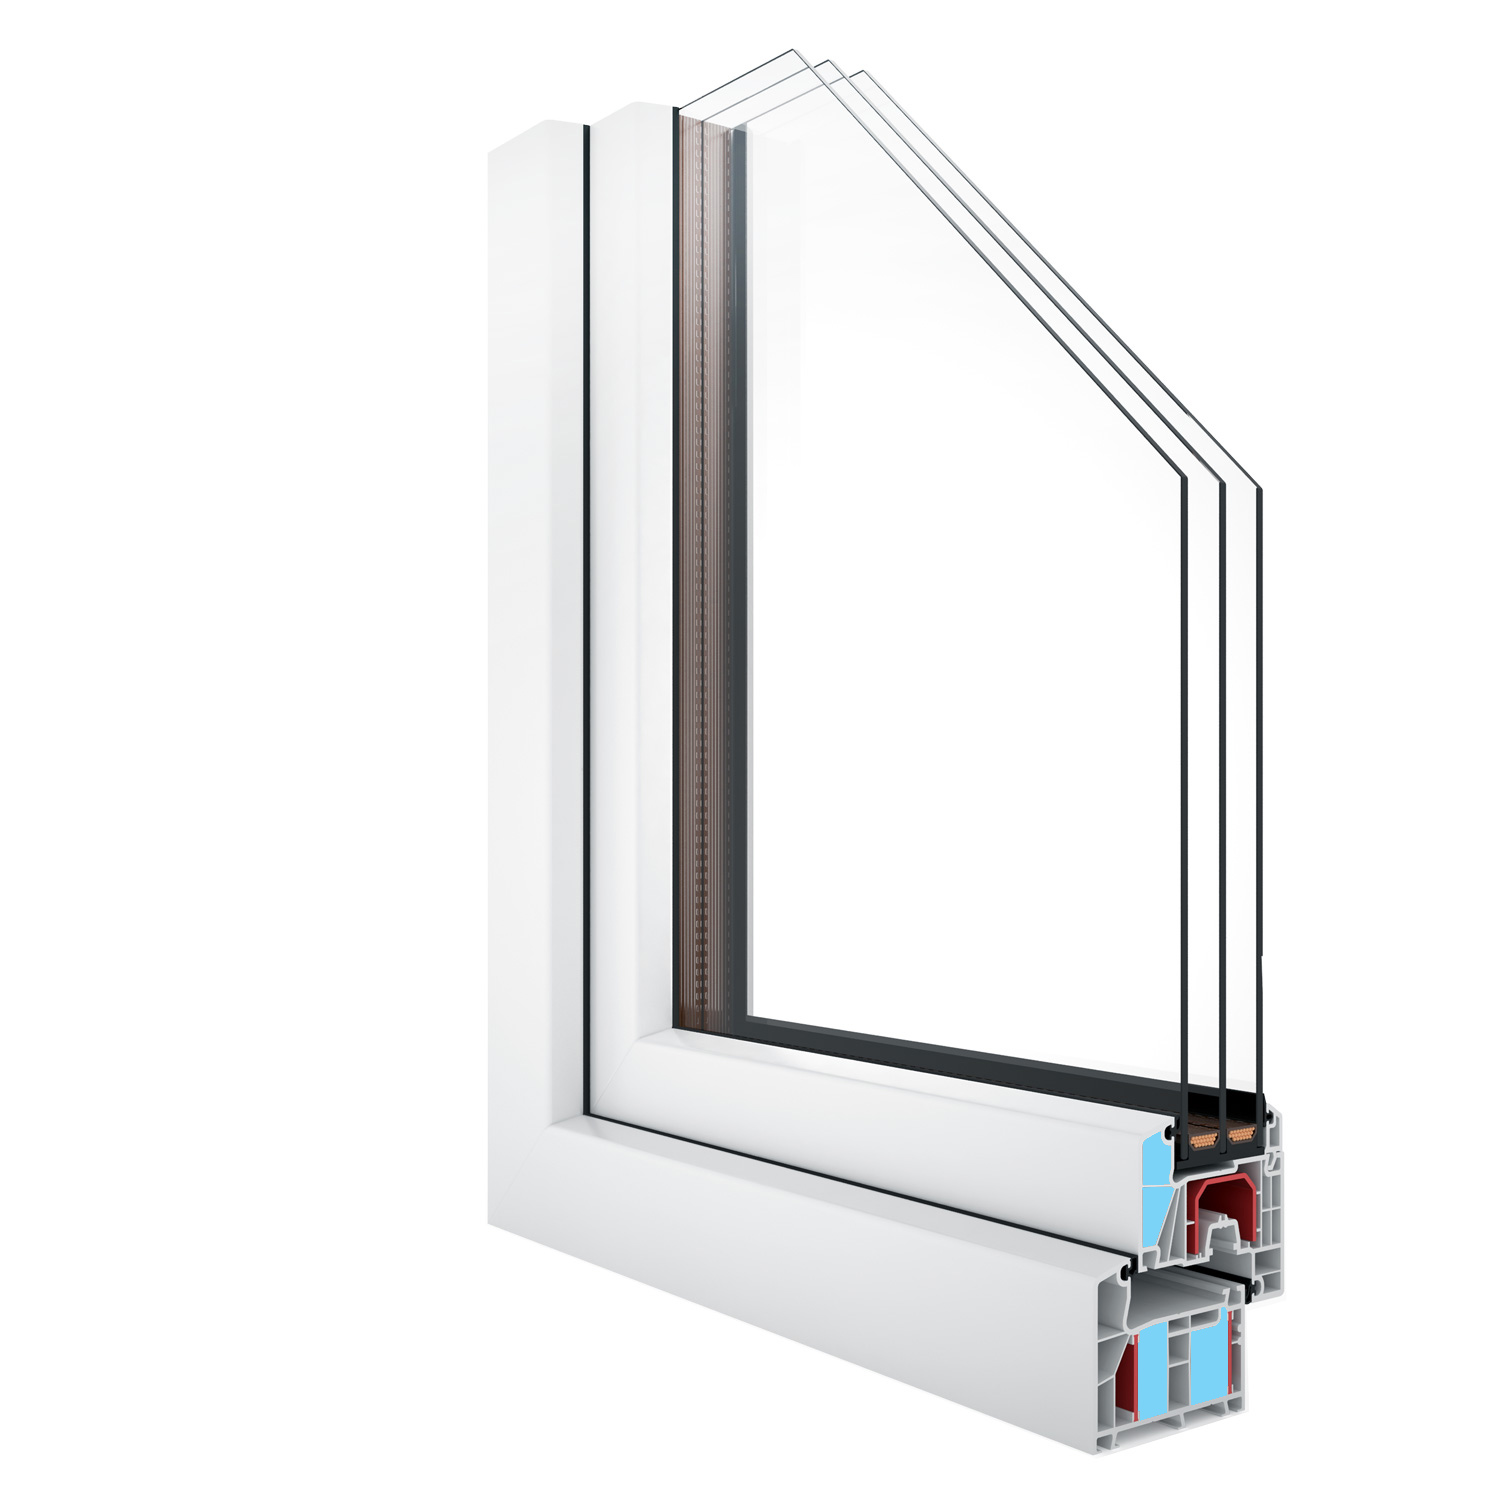 R-8 Zola Thermo Plus uPVC™ window rendering